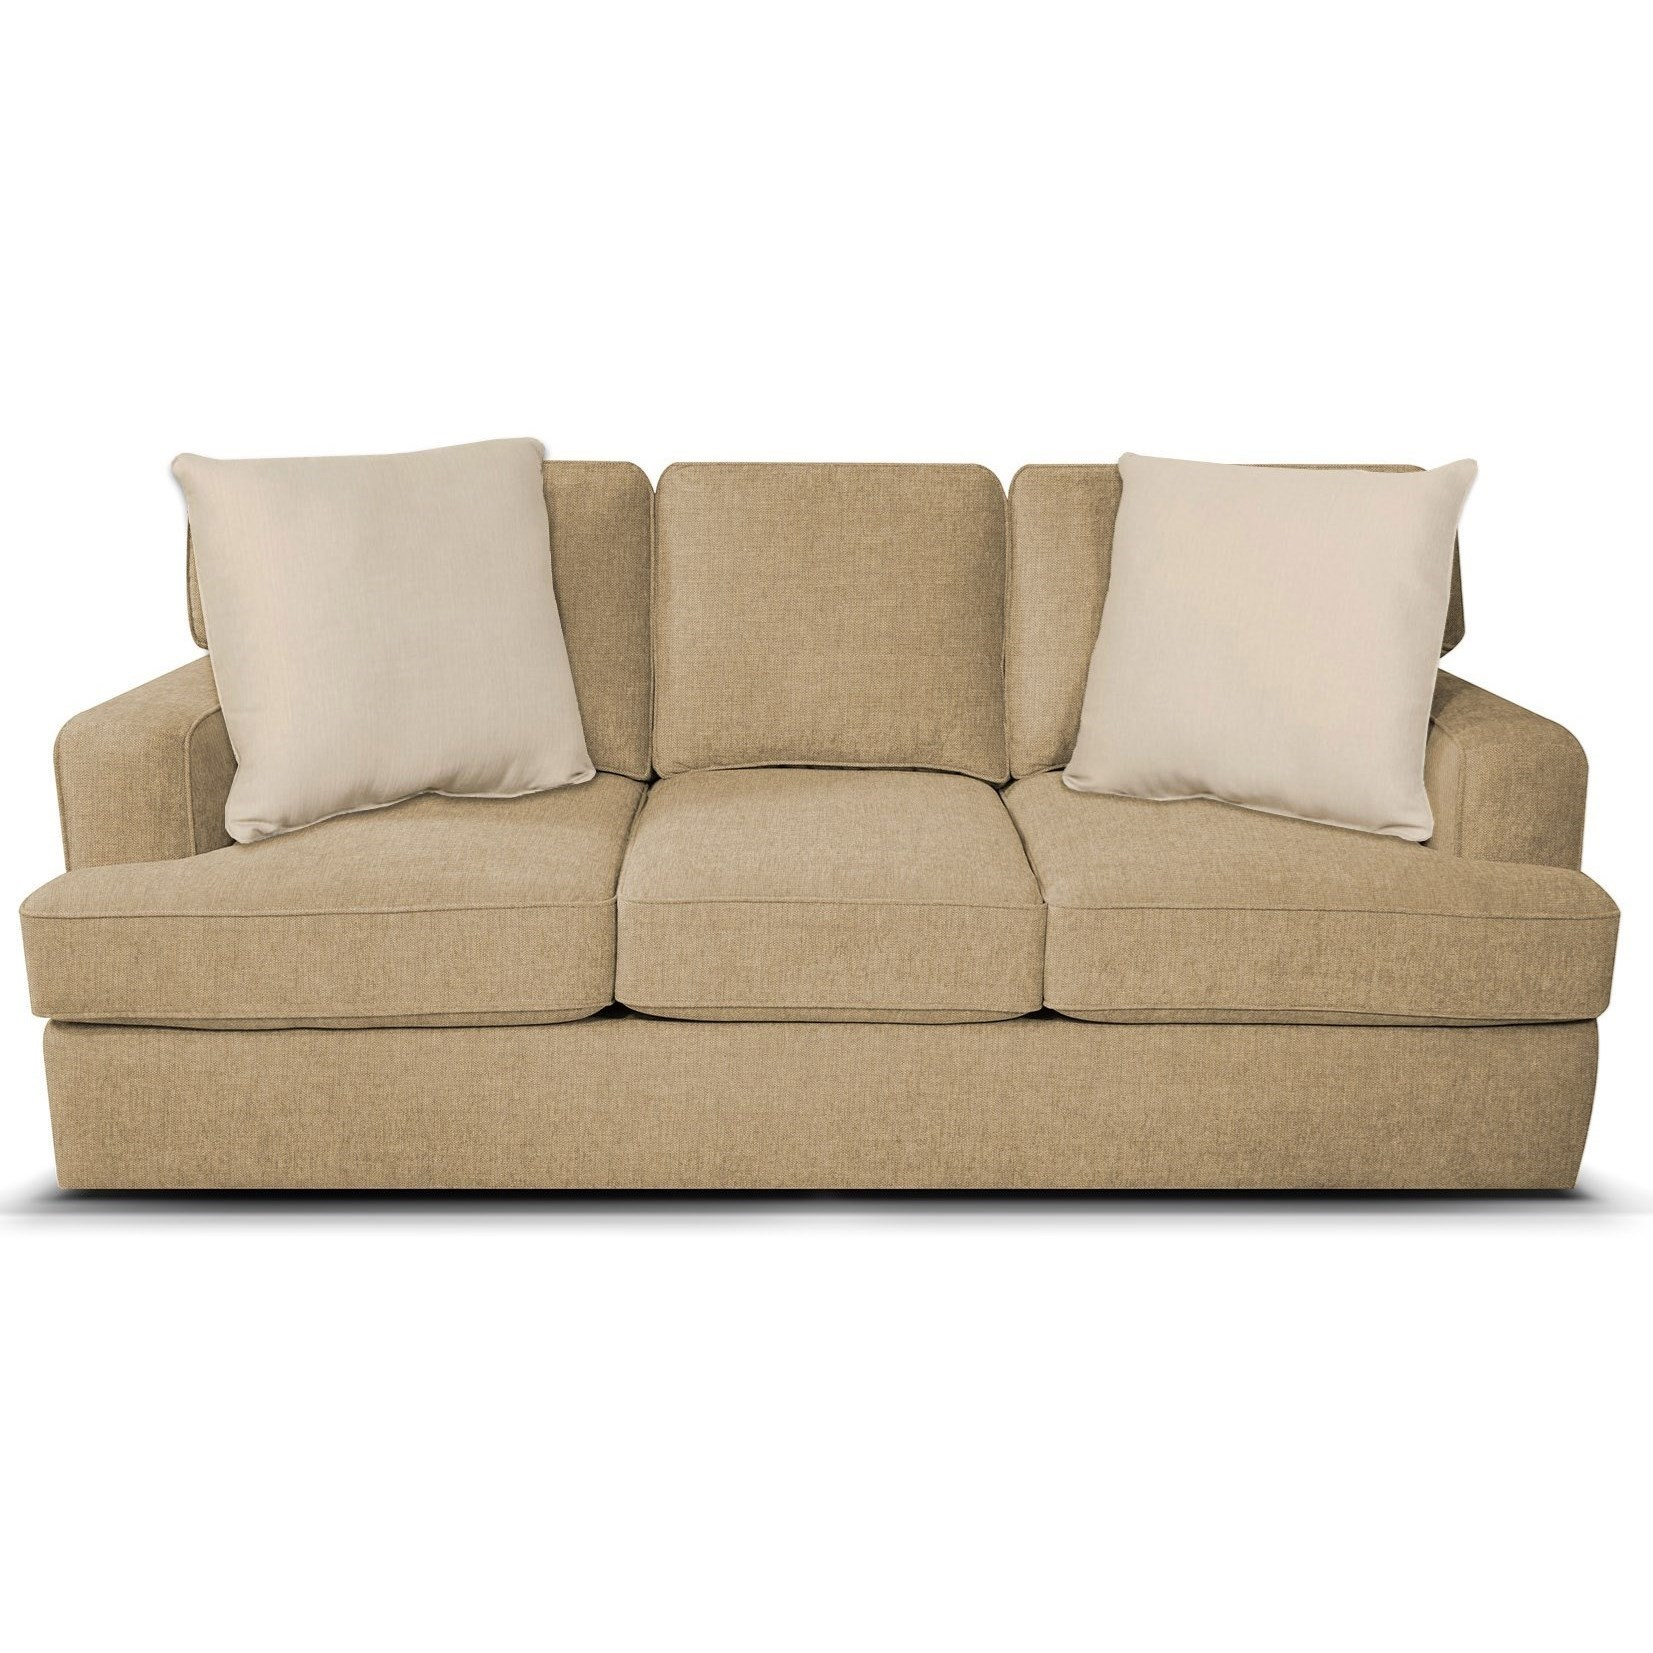 Rouse Sofa by England at SuperStore